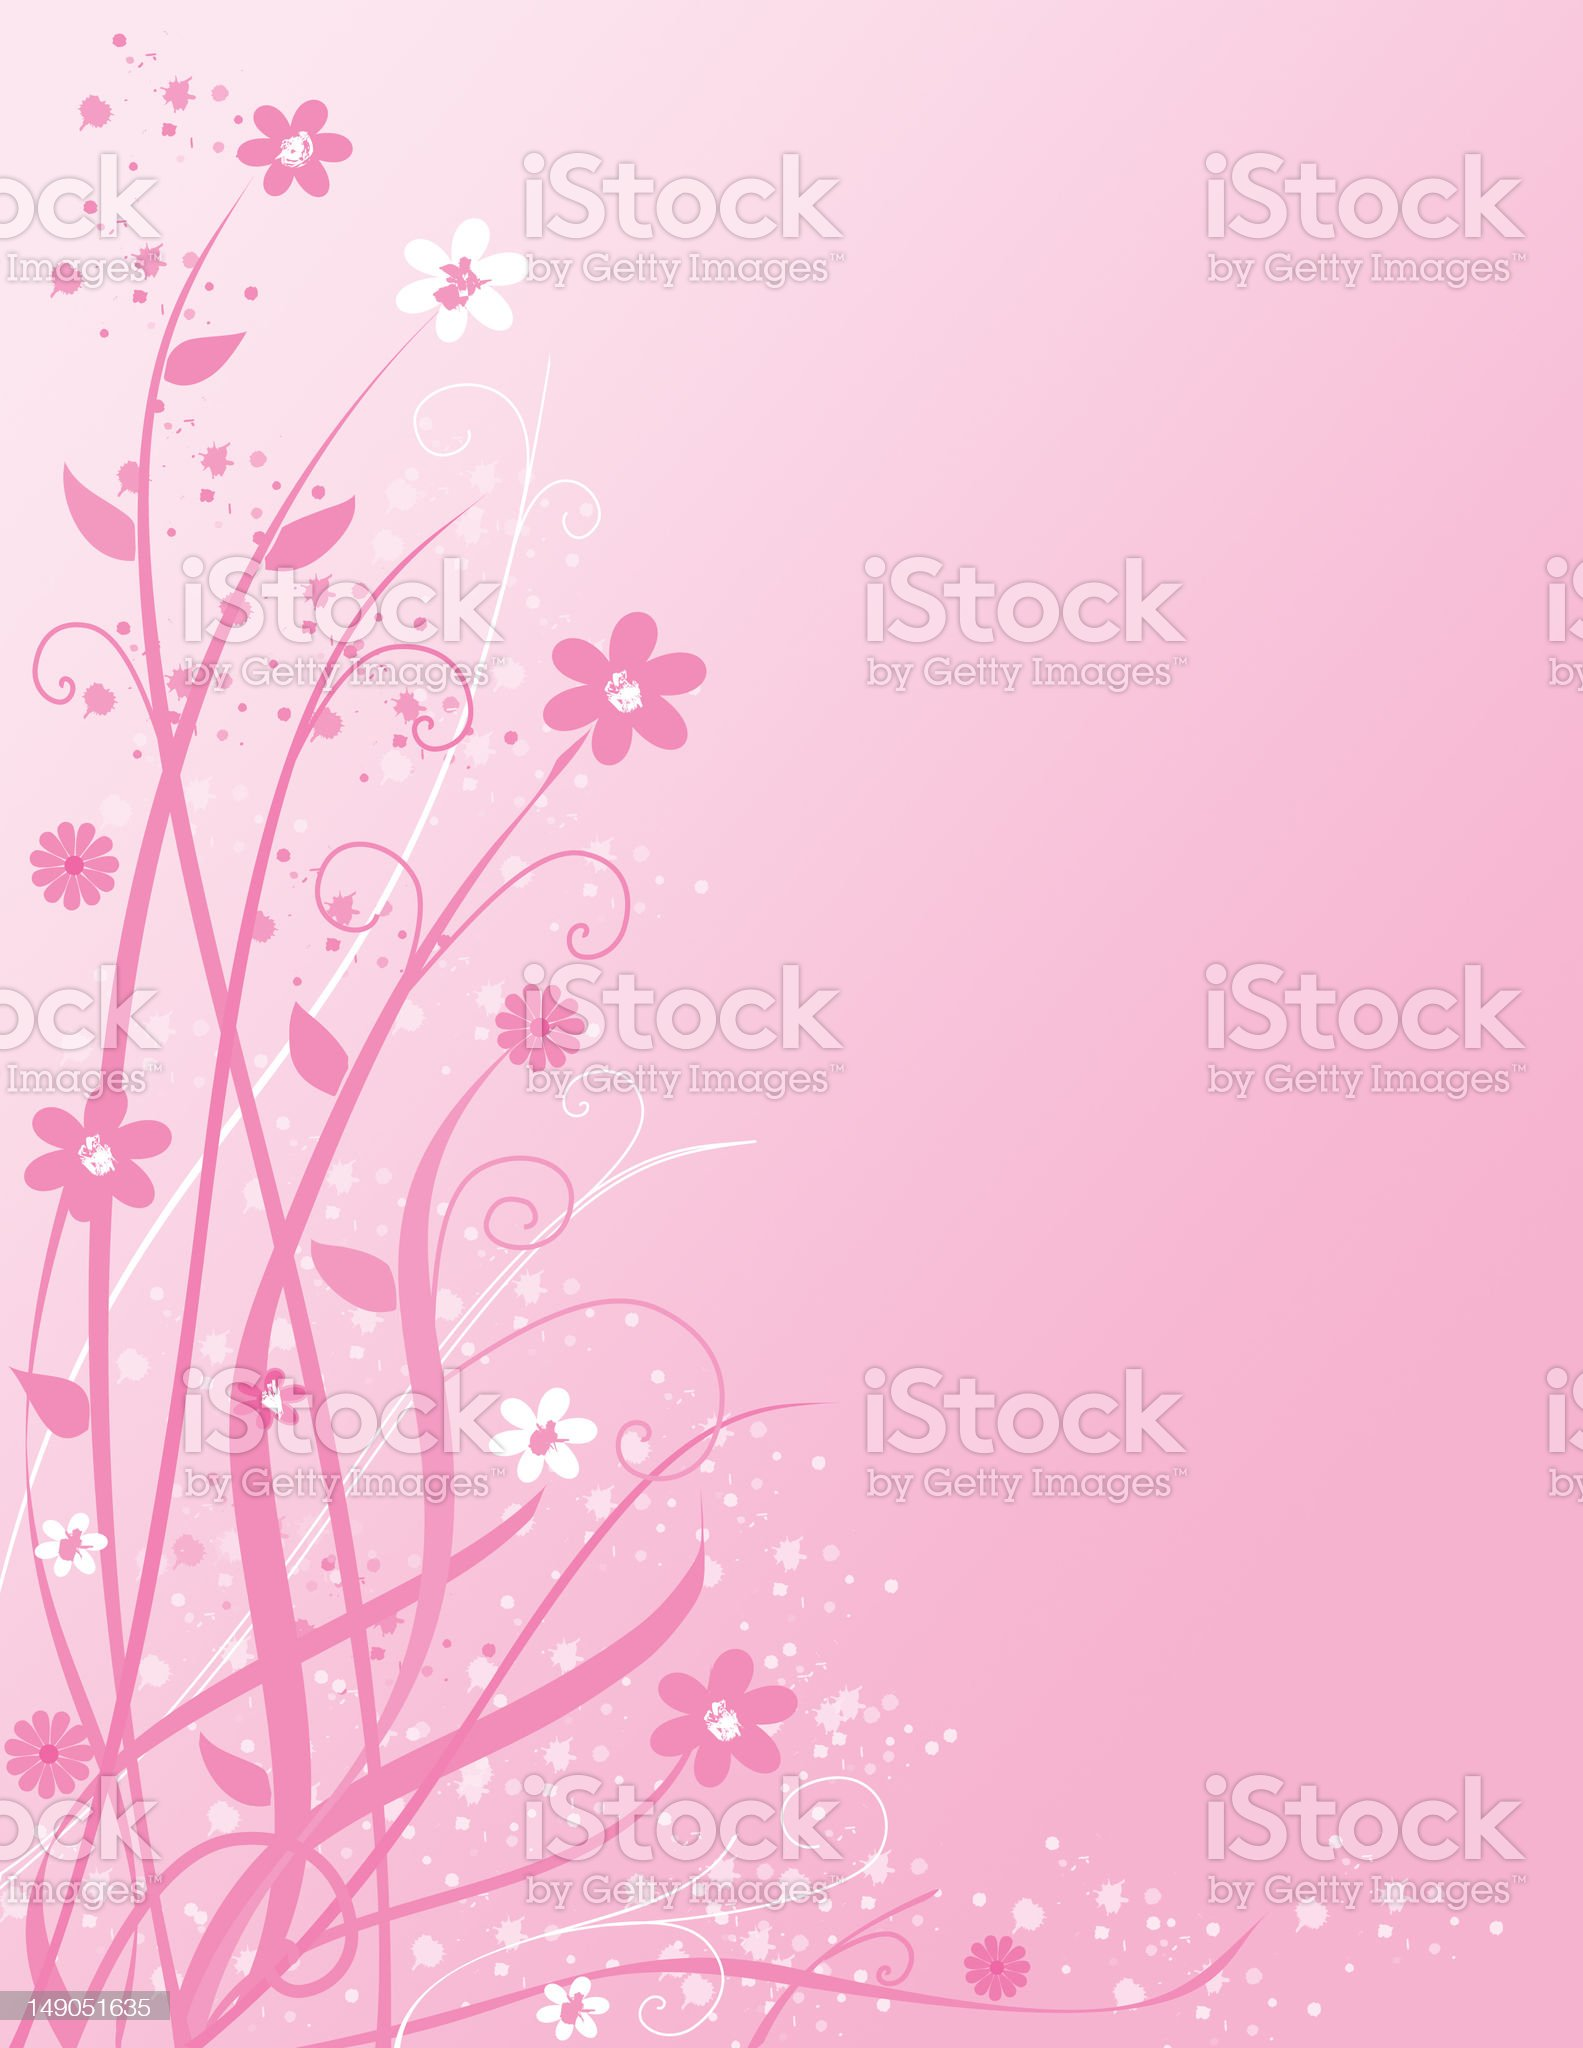 Flower Background royalty-free stock photo